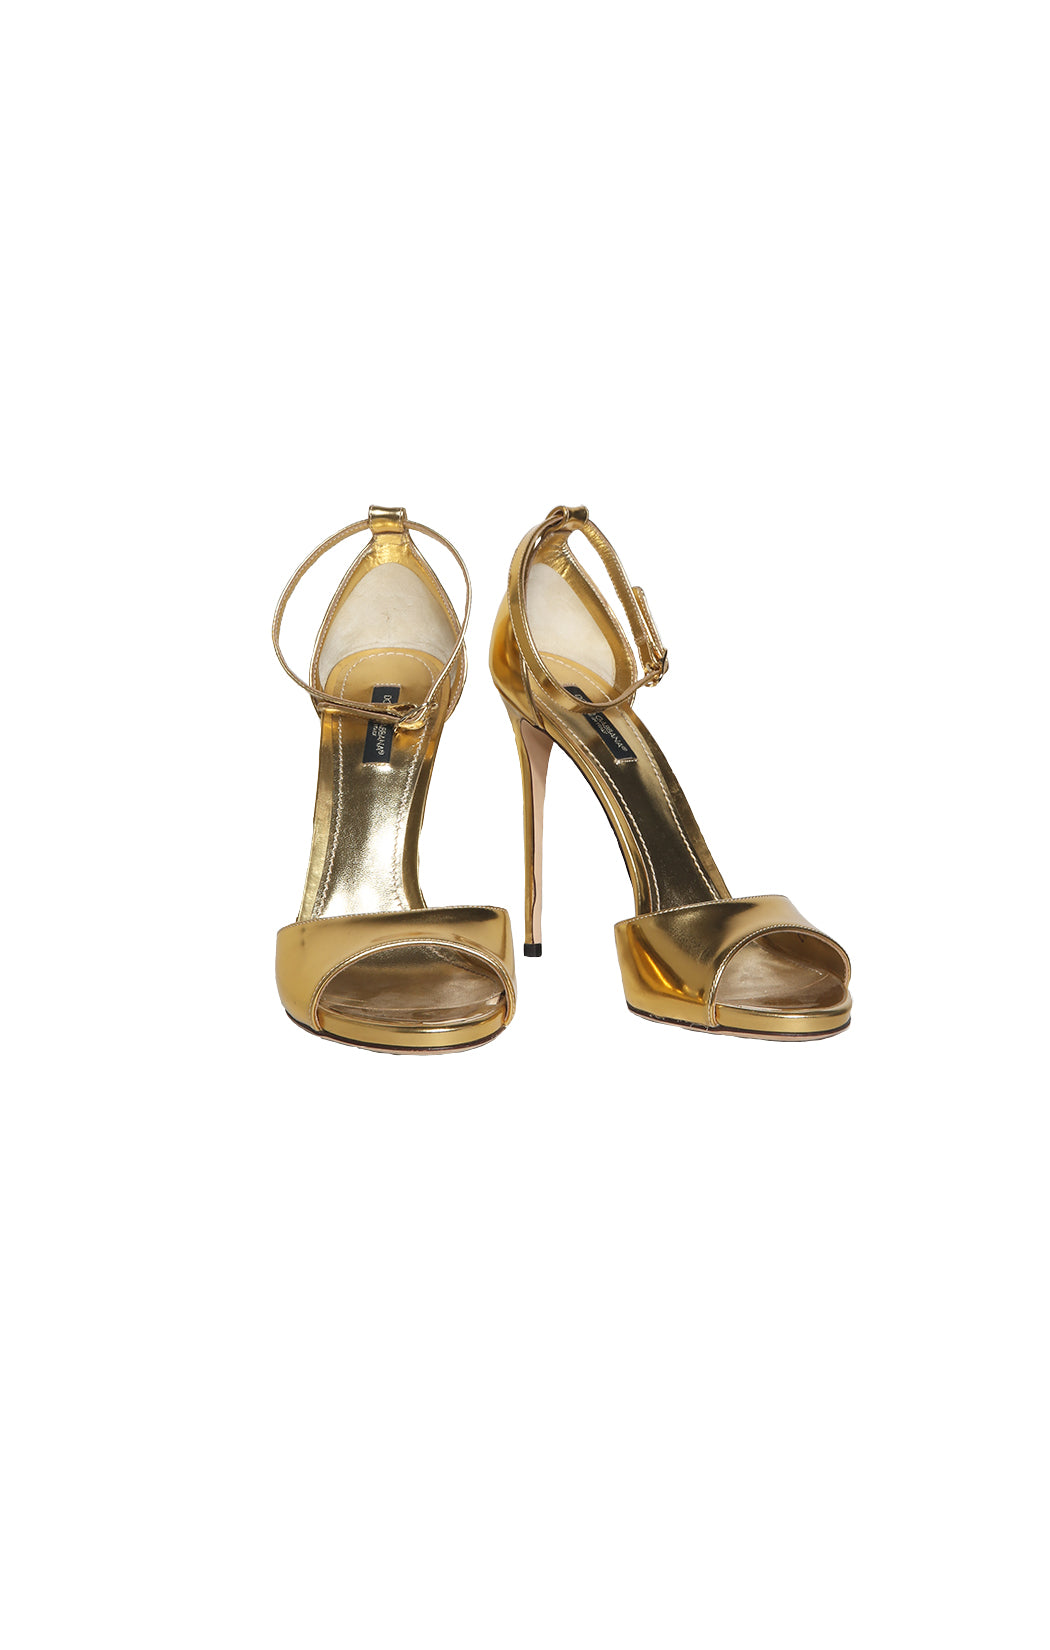 Front view of DOLCE & GABBANA Gold High Heeled Sandal Size: 39 (US 9)